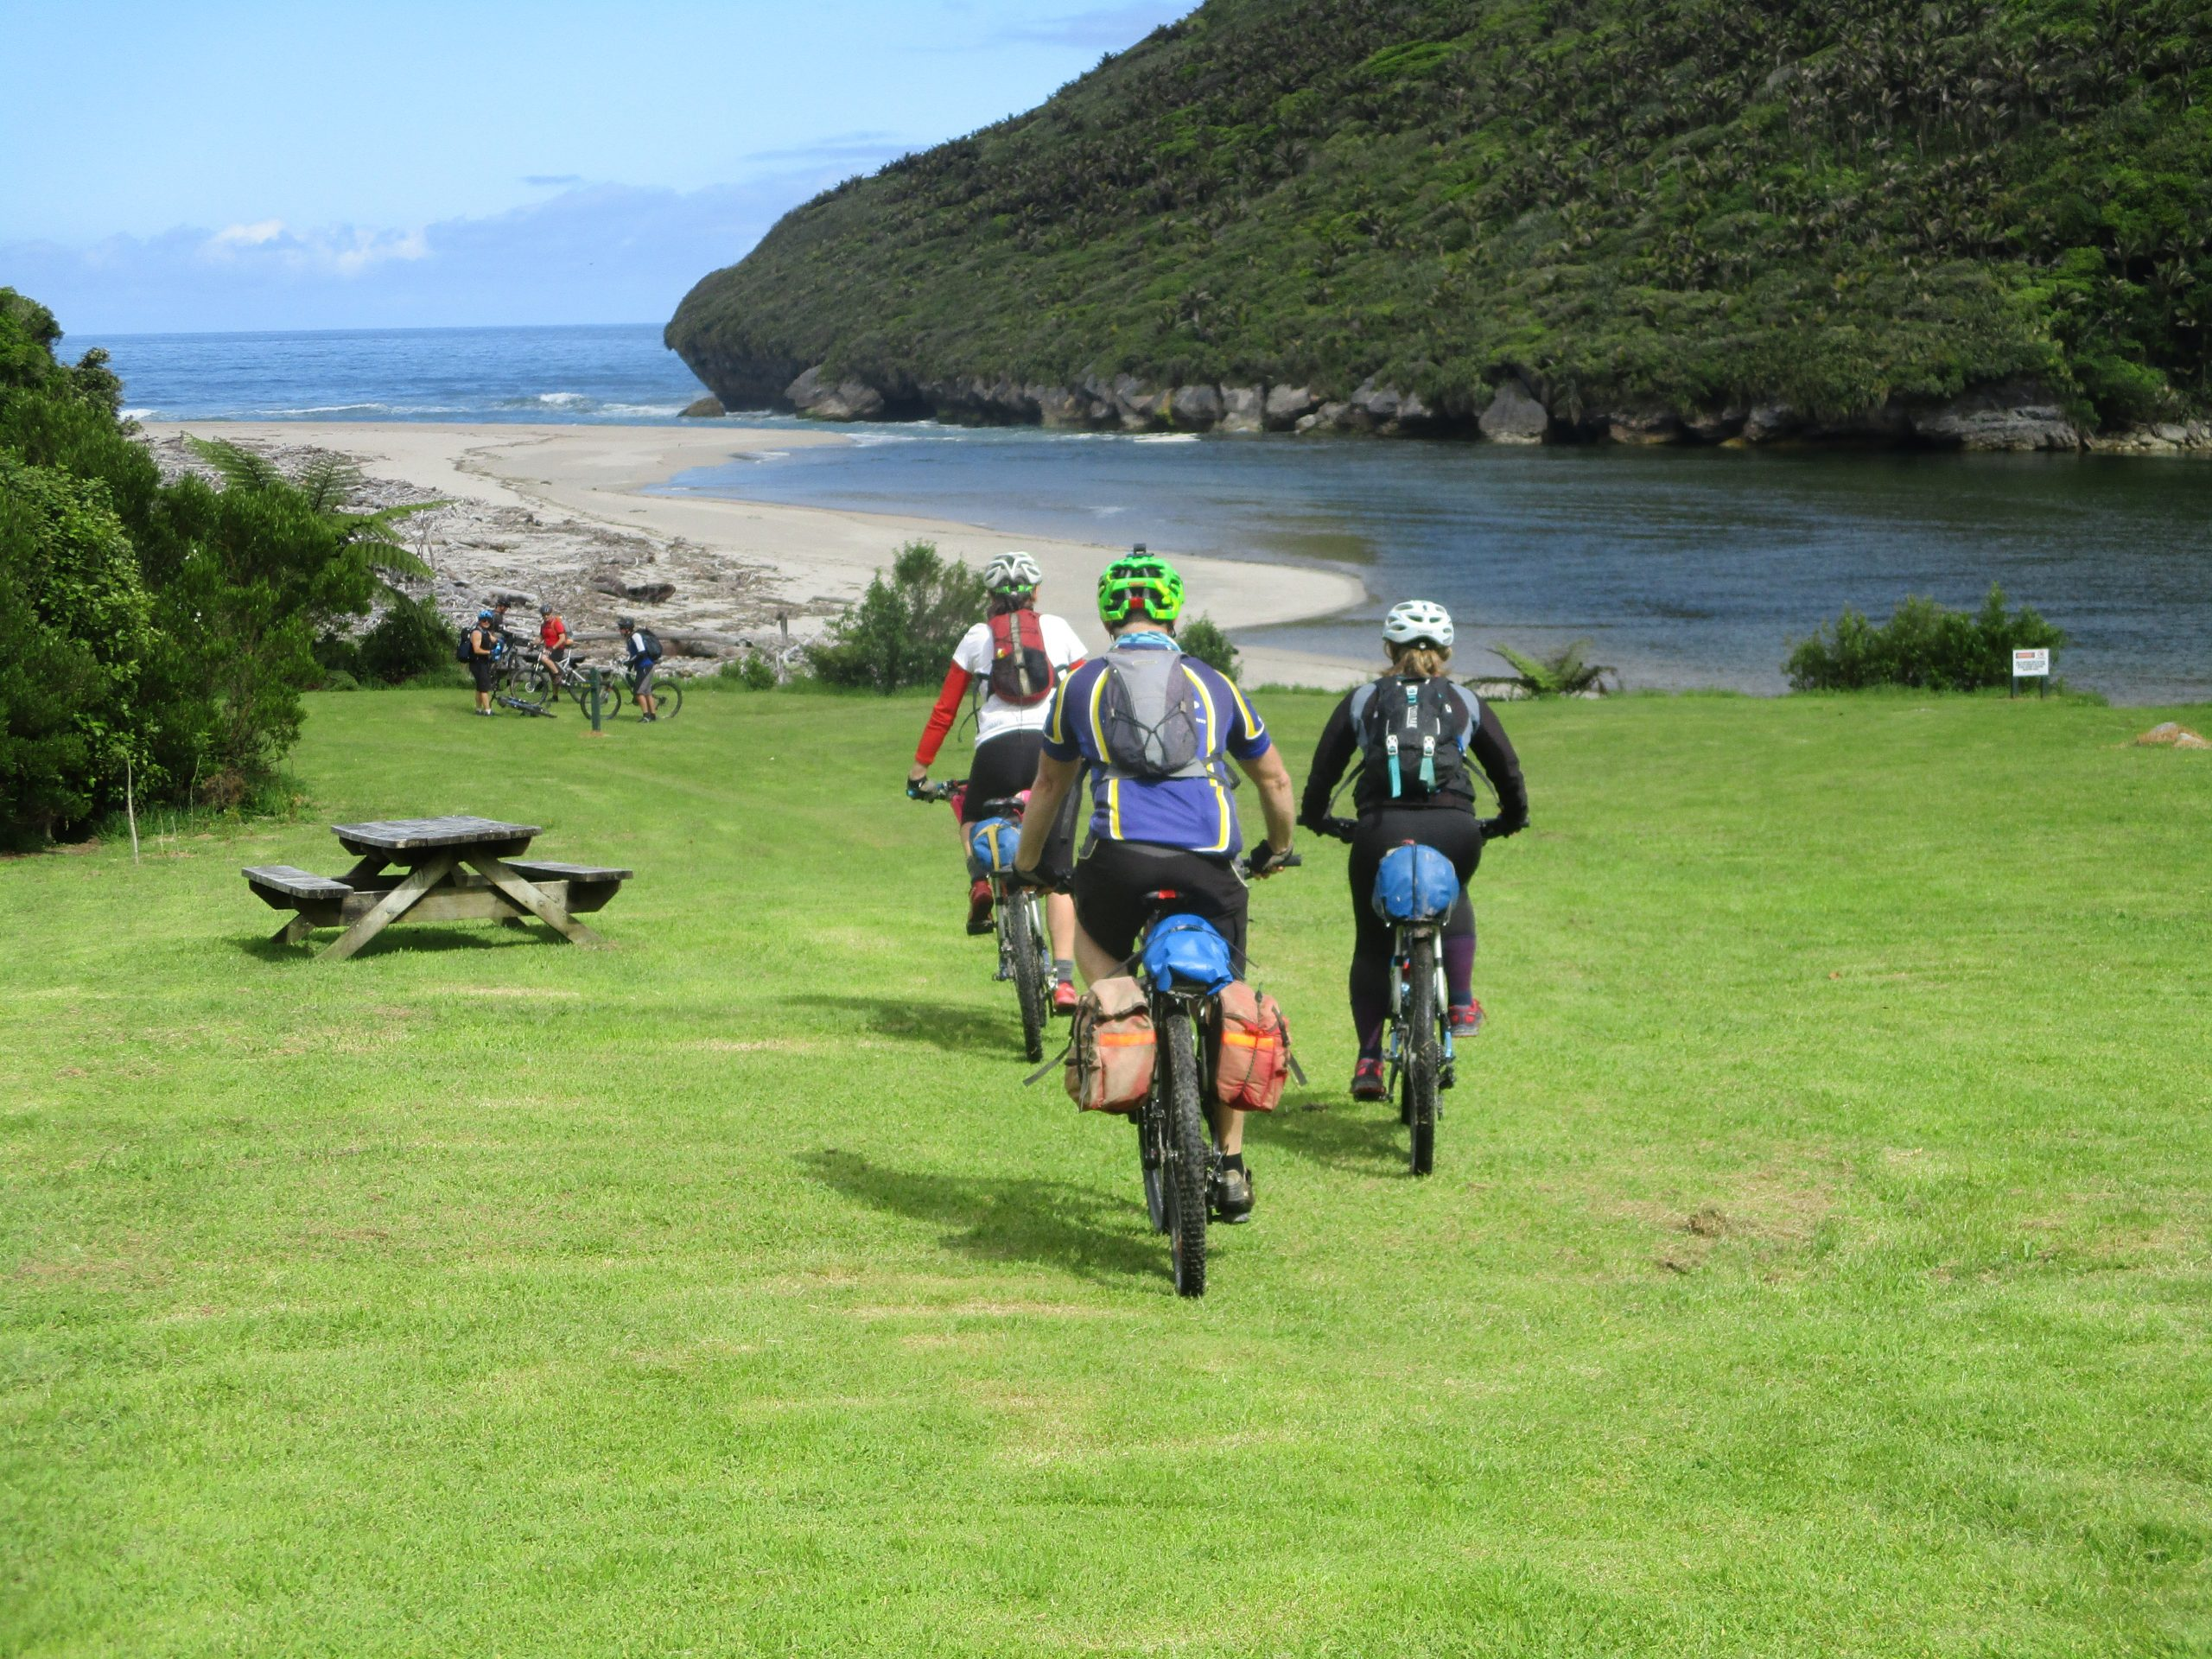 The goRide team's 'great' mountain biking adventure on the Heaphy Track